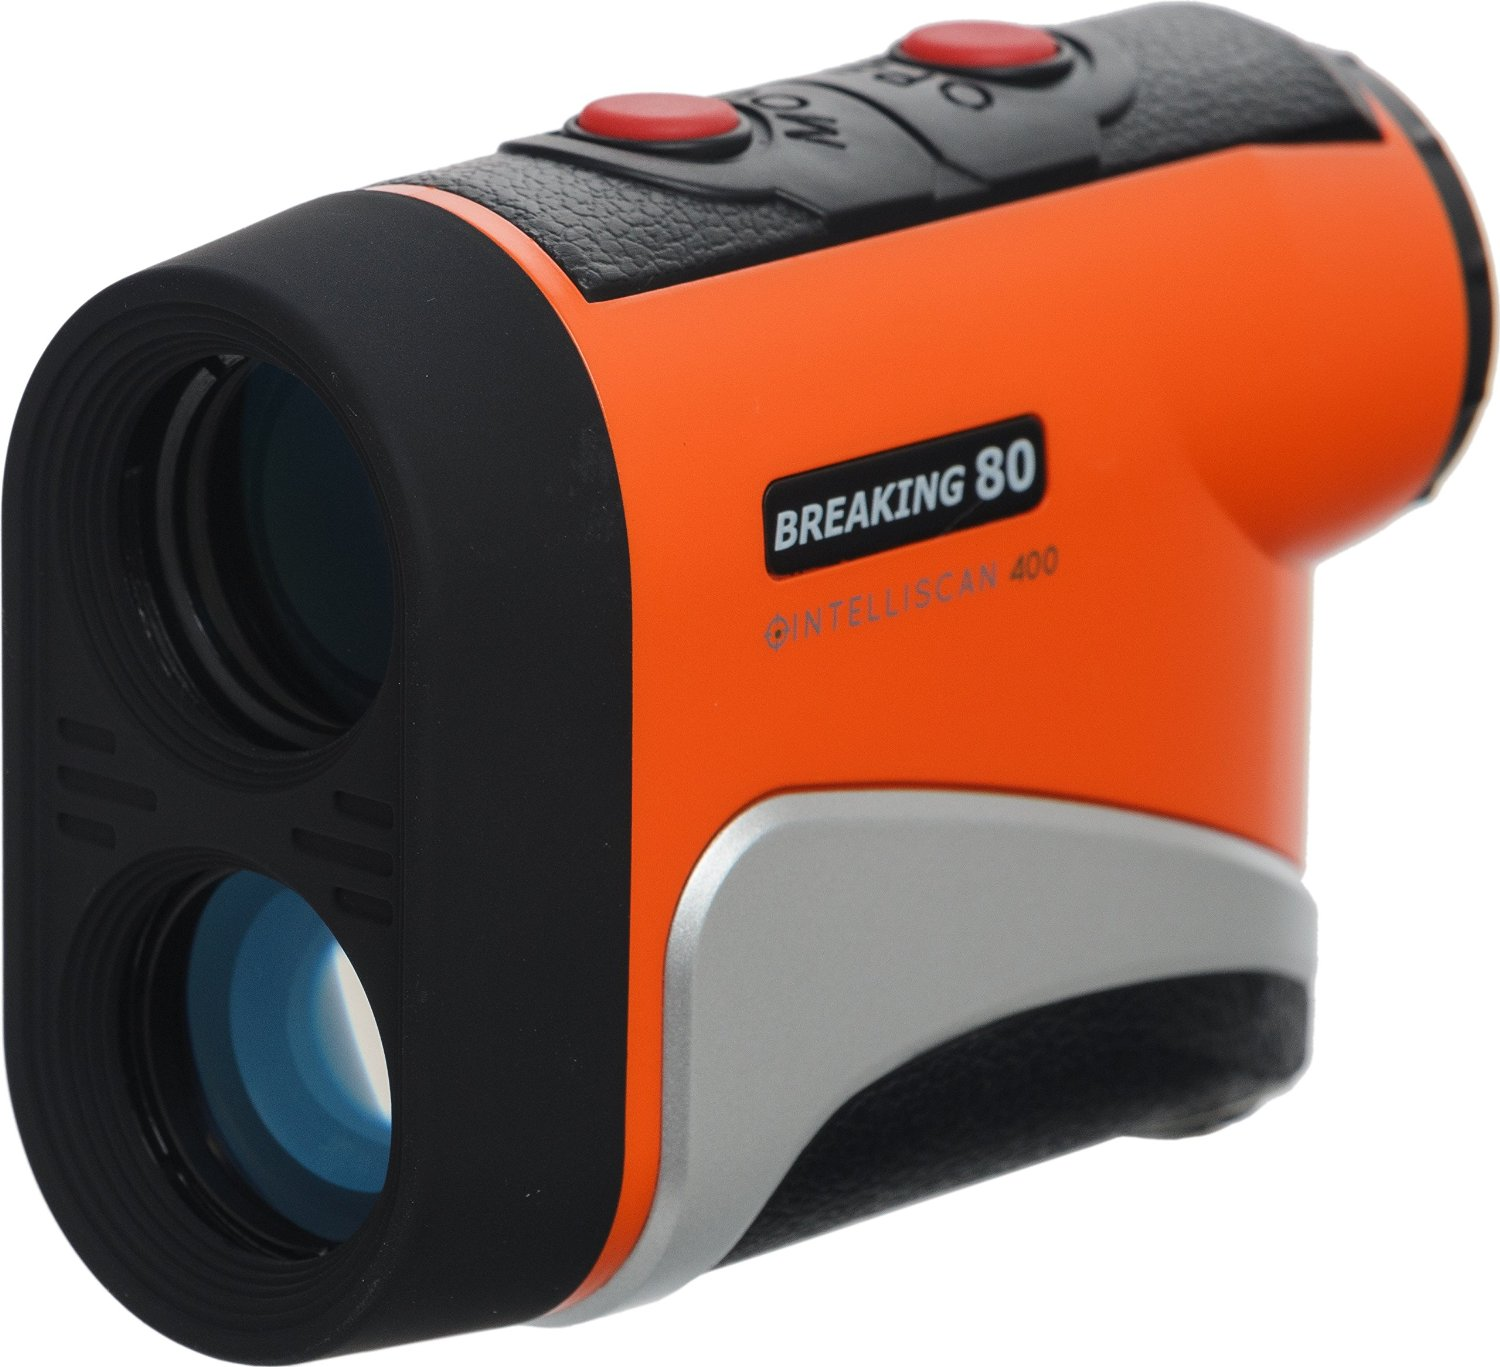 Breaking 80 Golf Digital Laser Range Finders